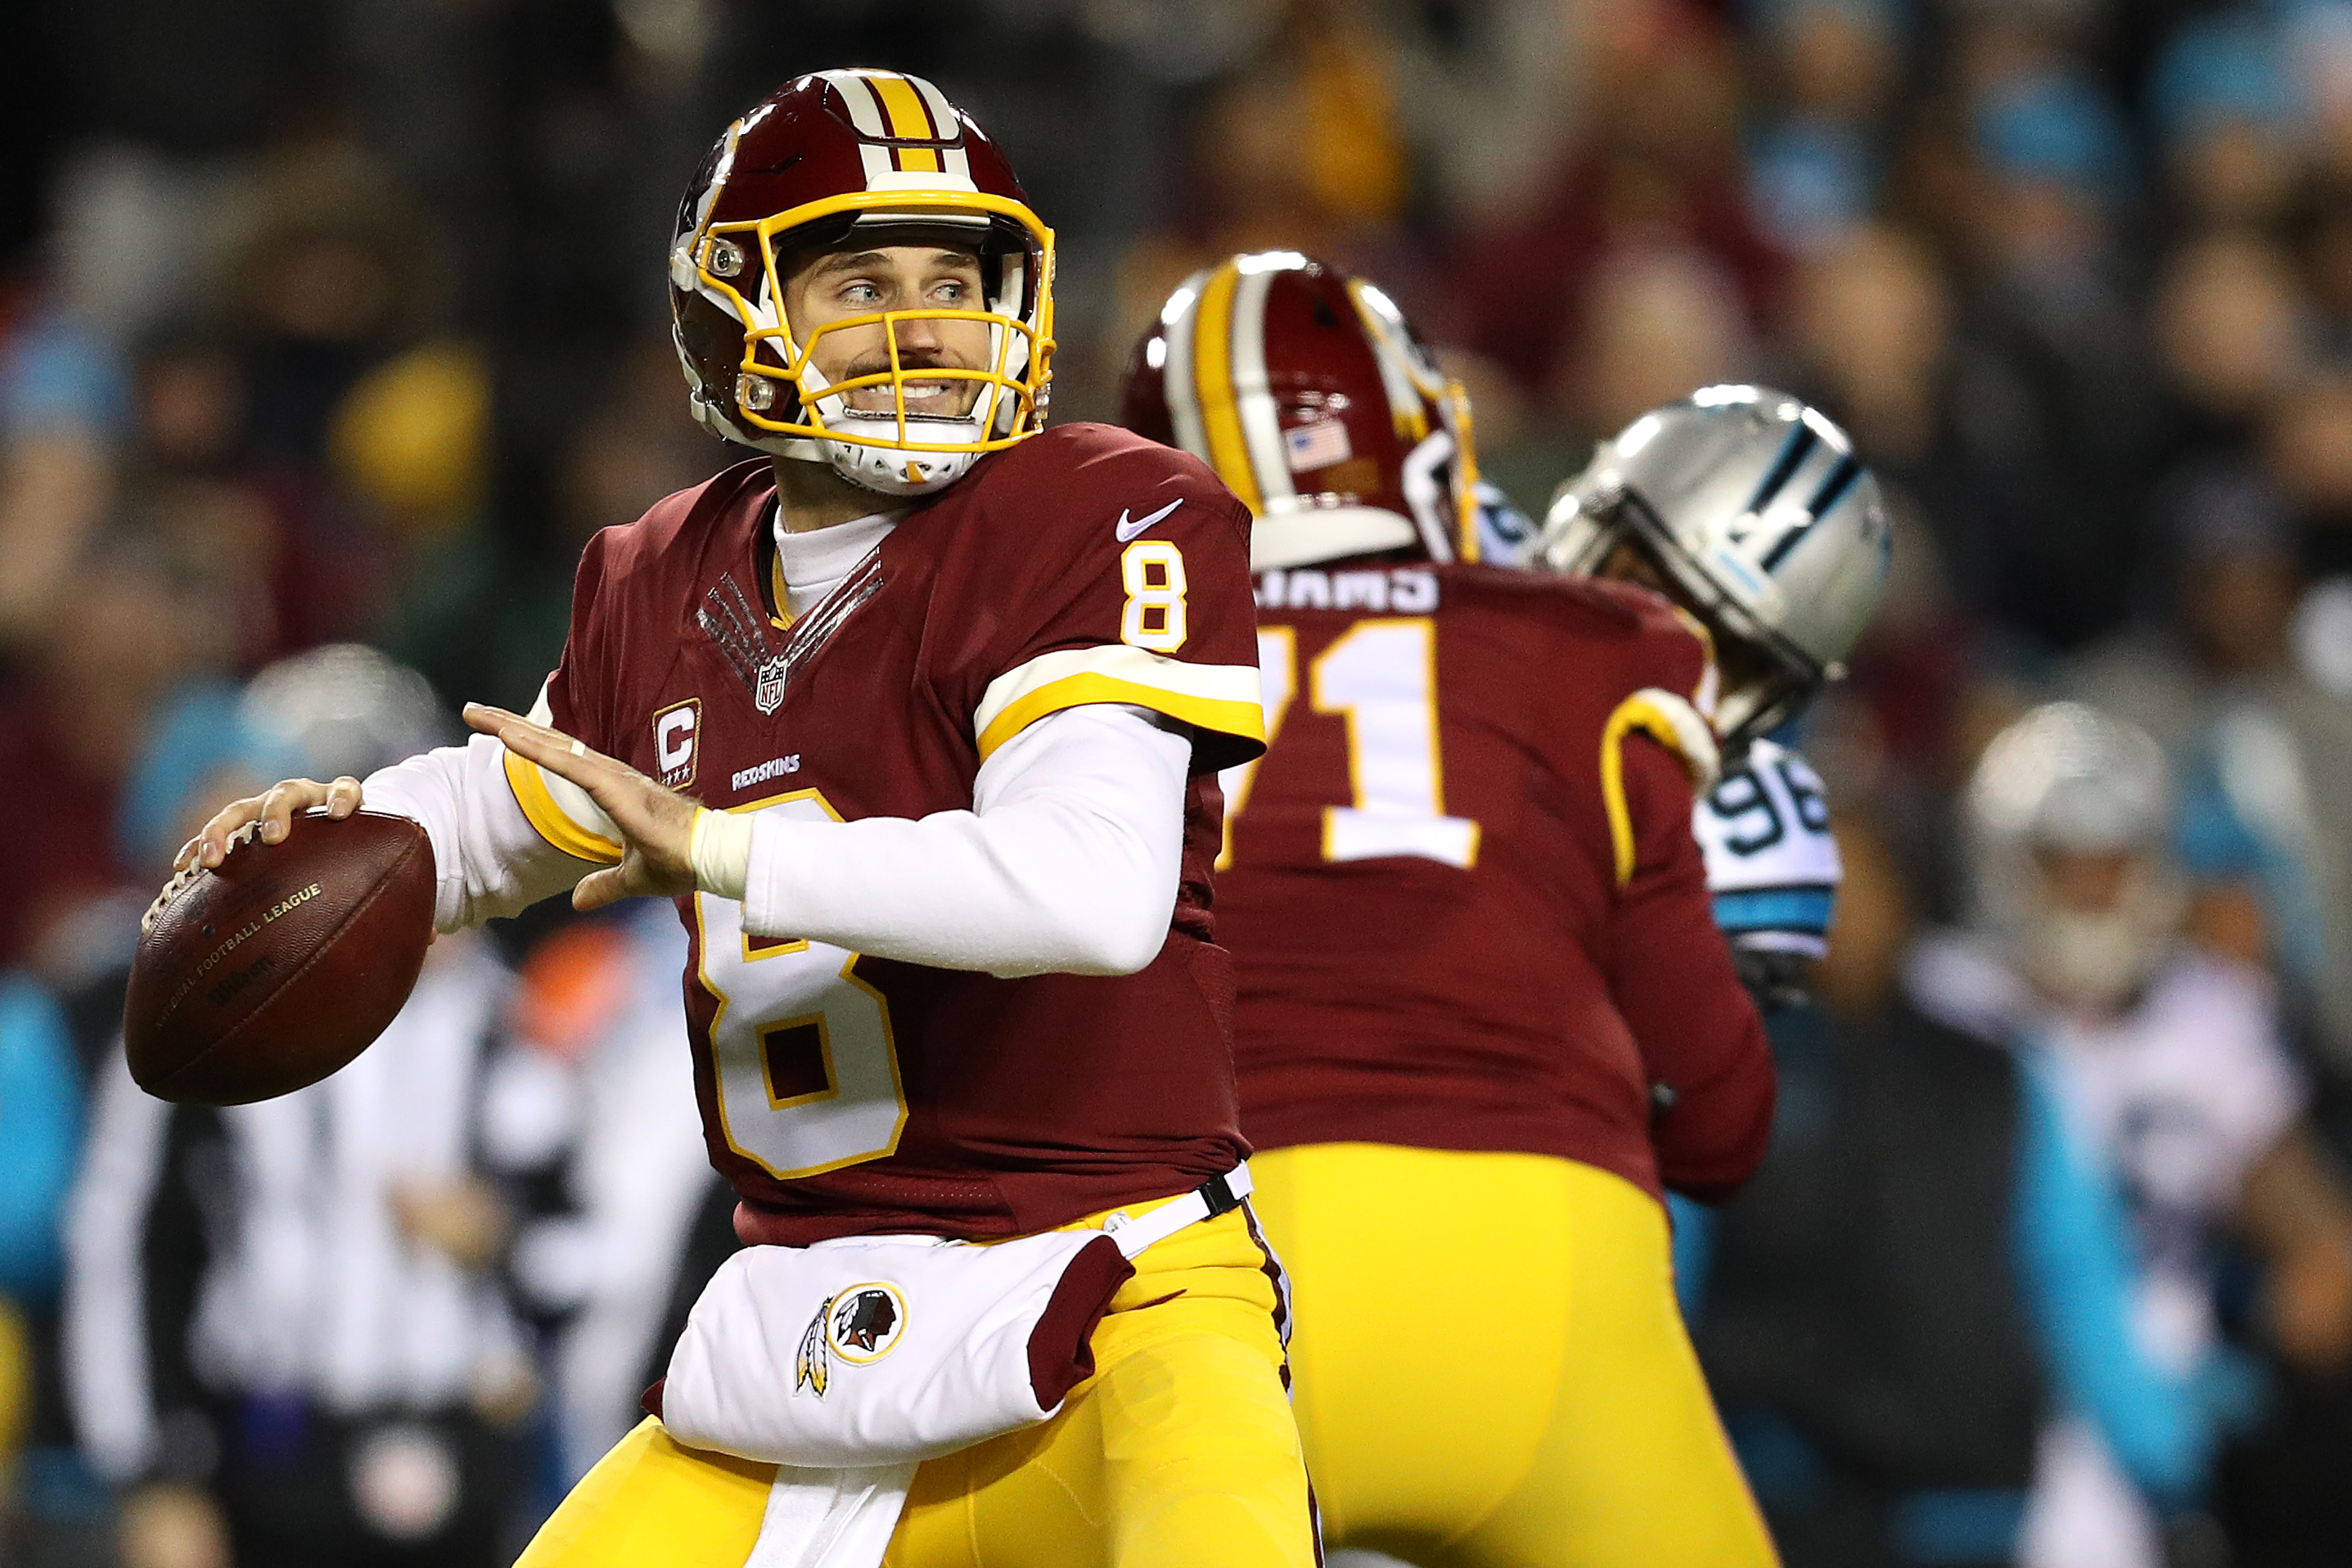 Kirk Cousins Rumors: QB Not Expected to Sign New Contract by Monday